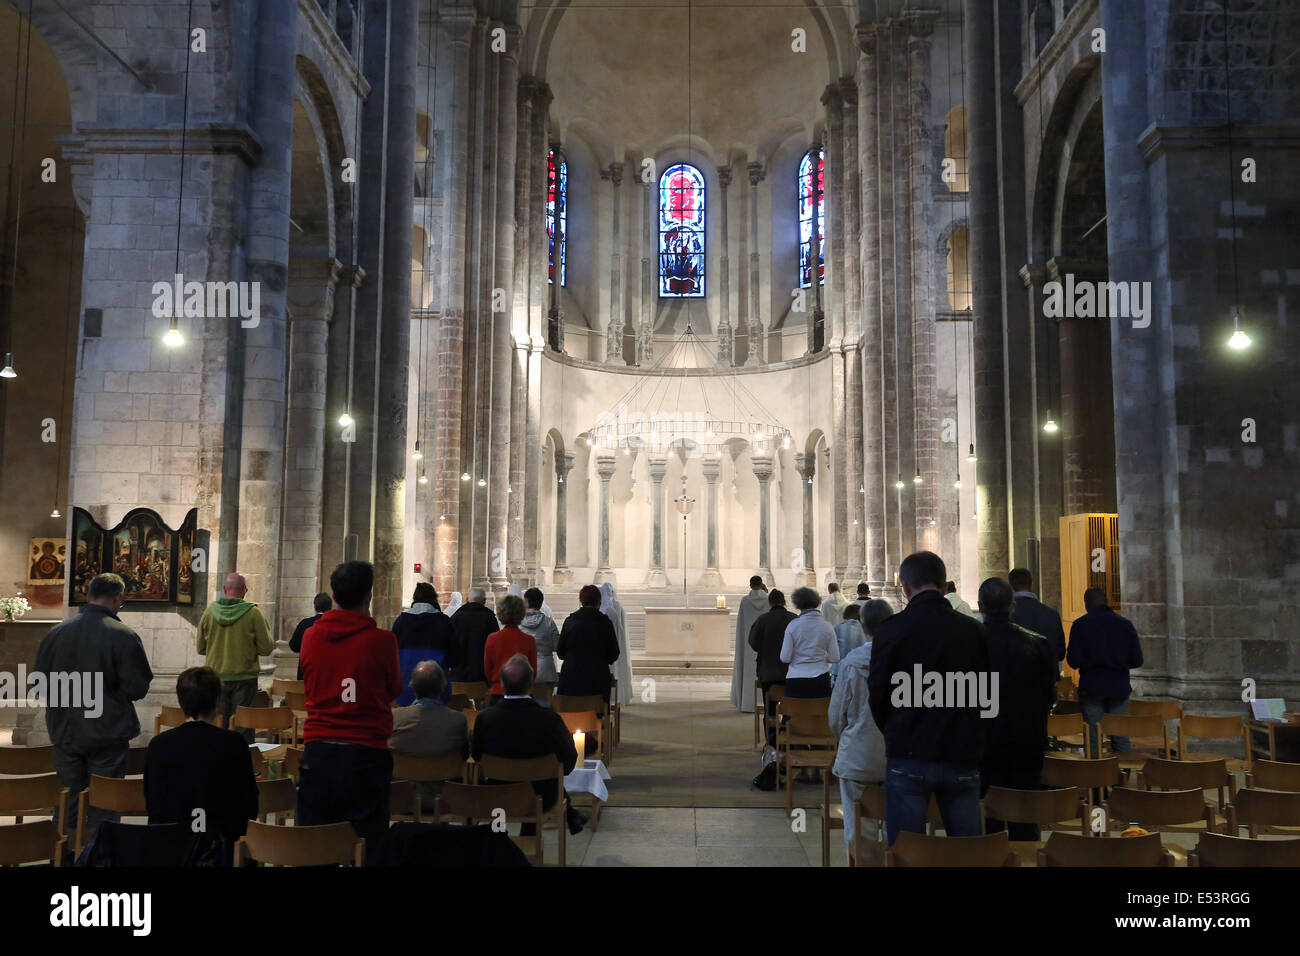 Roman architecture style, Interior of the church of Great Saint Martin in Cologne, Germany - Stock Image